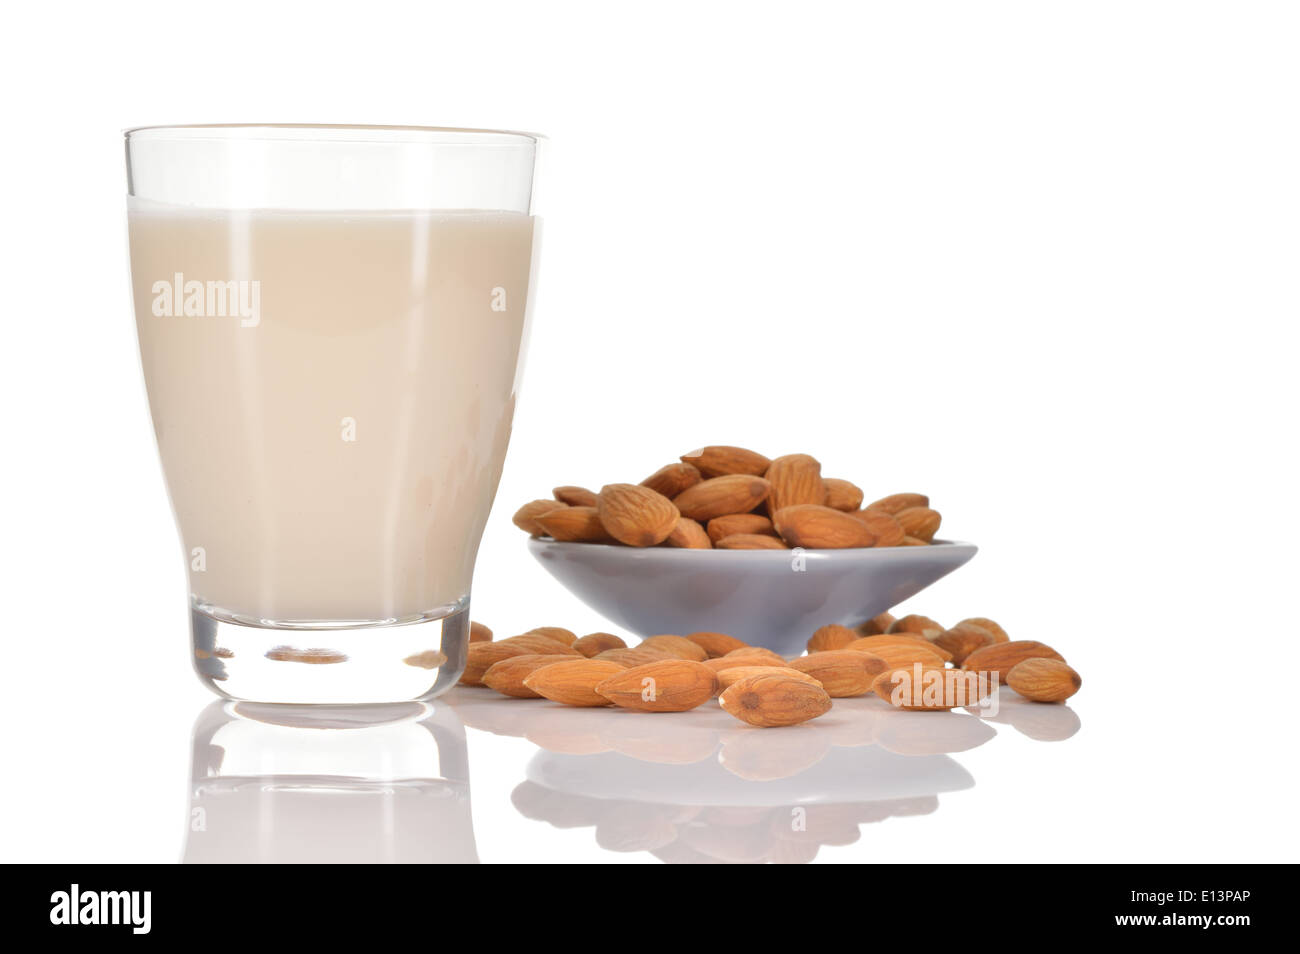 Almond milk as a substitute for dairy milk. Glass of almond milk and few almonds on a saucer isolated on white background. - Stock Image